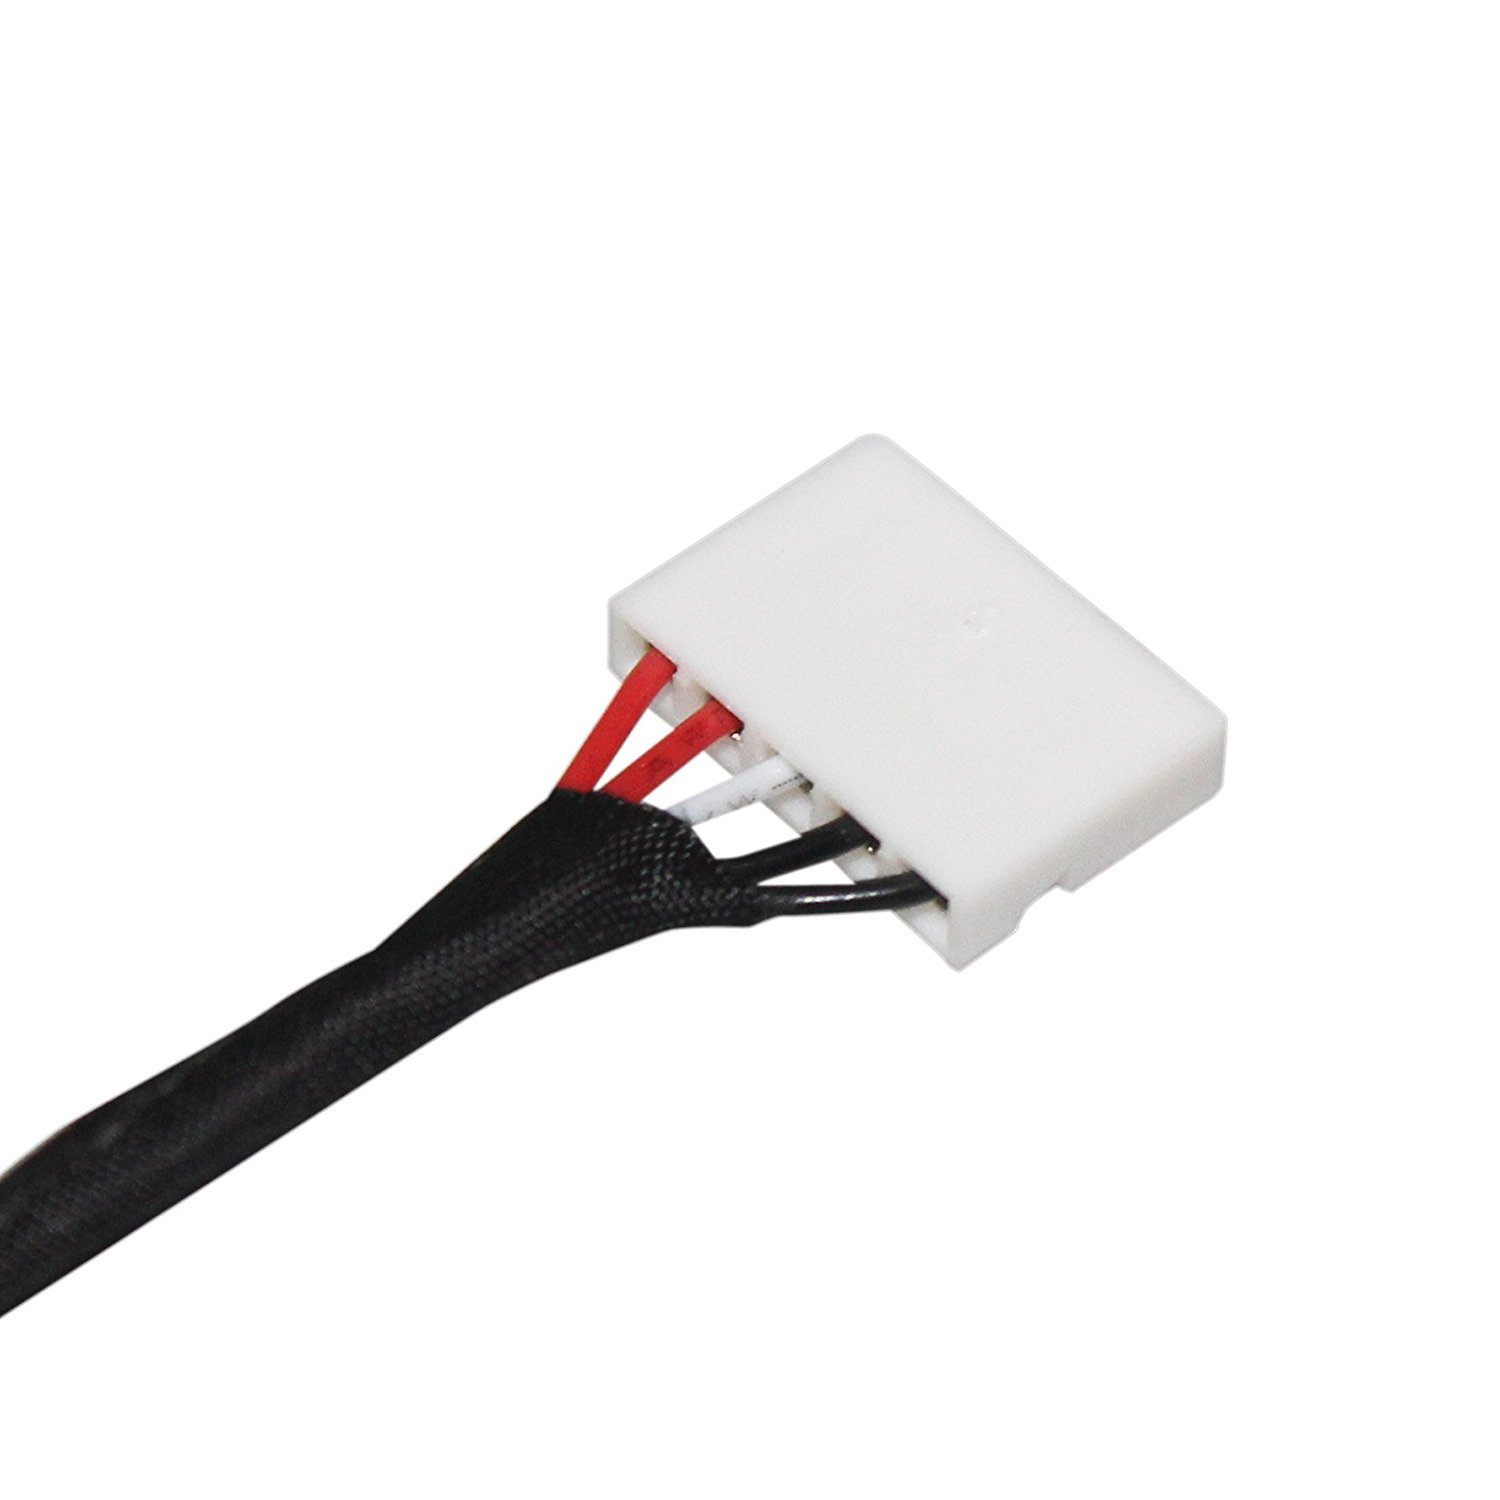 Gintai Dc Ac Power Jack Harness Socket Plug In Cable Z50 Wiring Replacement For Lenovo Ideapad G50 Series Dc30100lg00 70 75 80 Computers